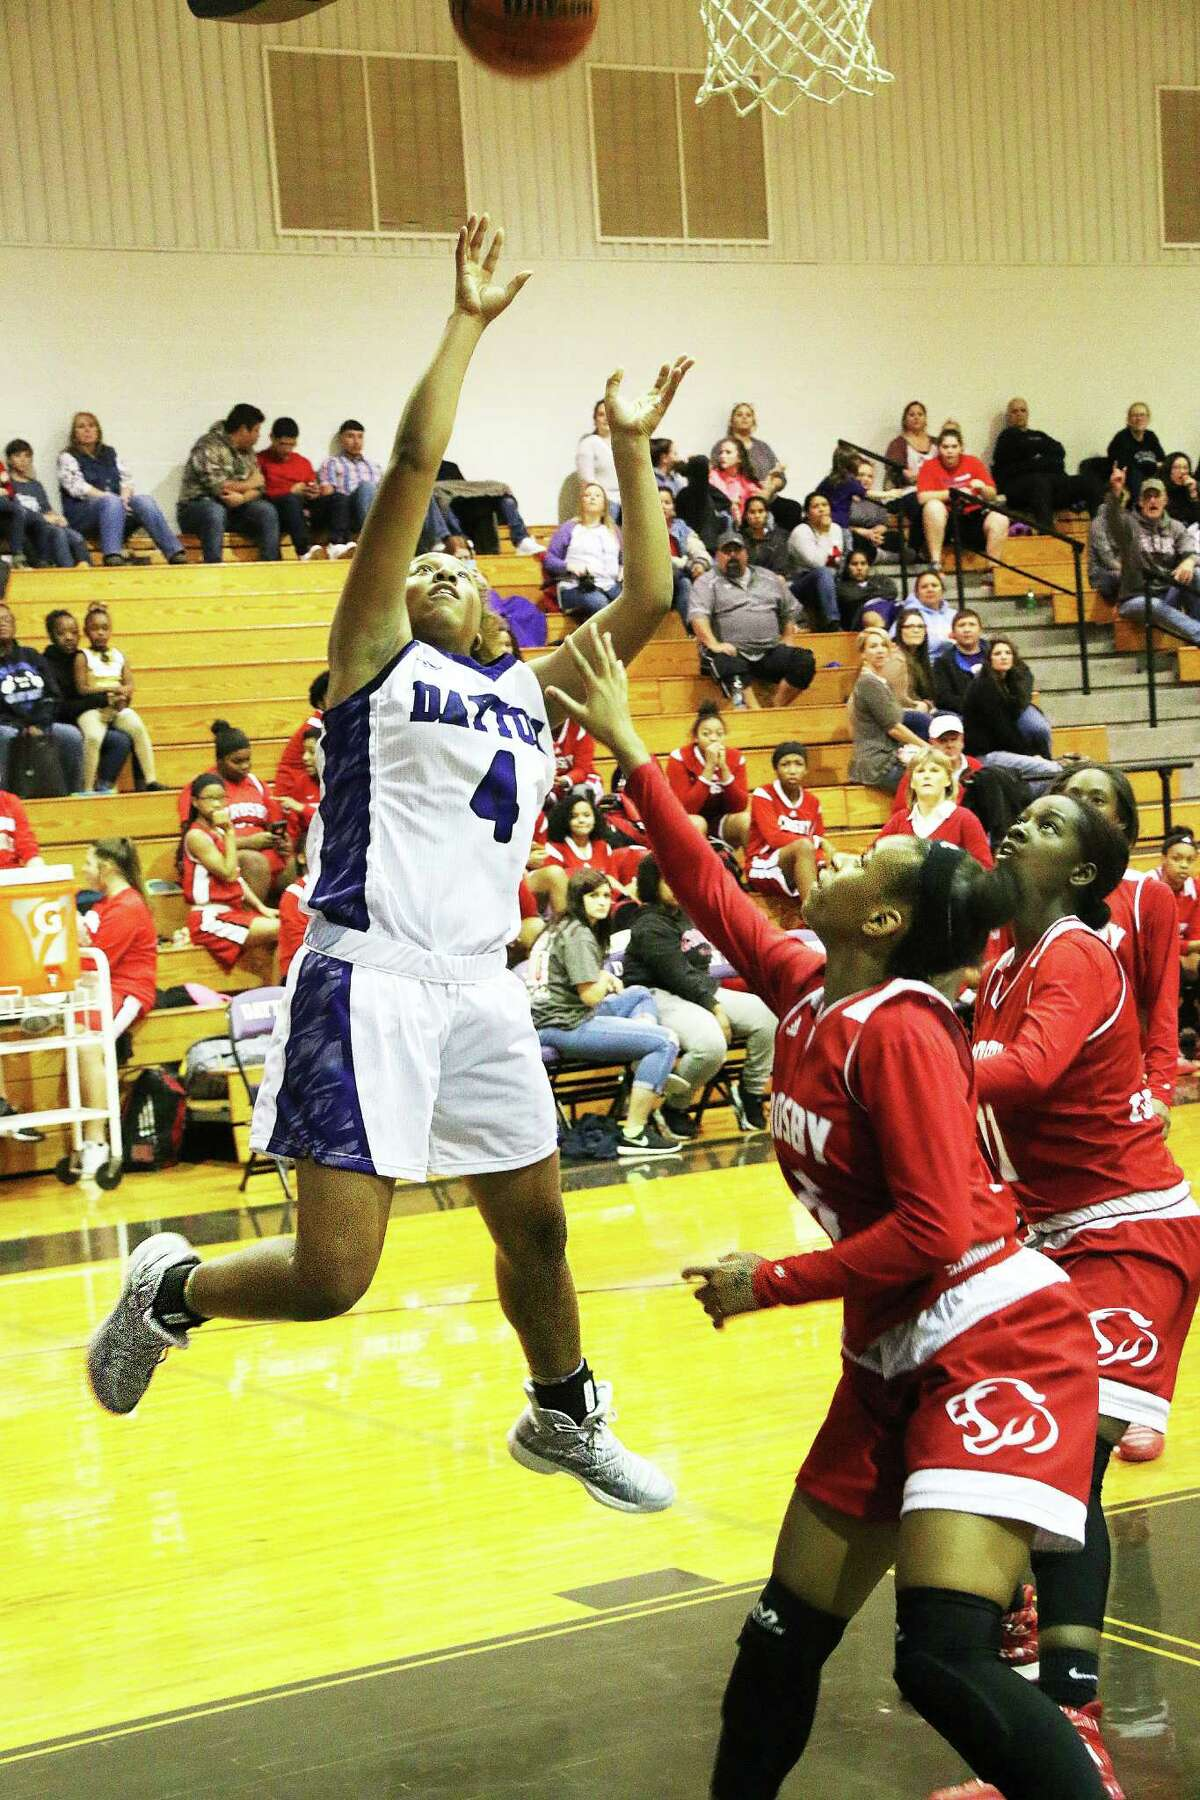 Junior guard Tayelin Grays takes the ball to the basket in the Lady Broncos win over rival Crosby last Friday night. Grays finished the night with 27 points, 9 assists and 14 rebounds.